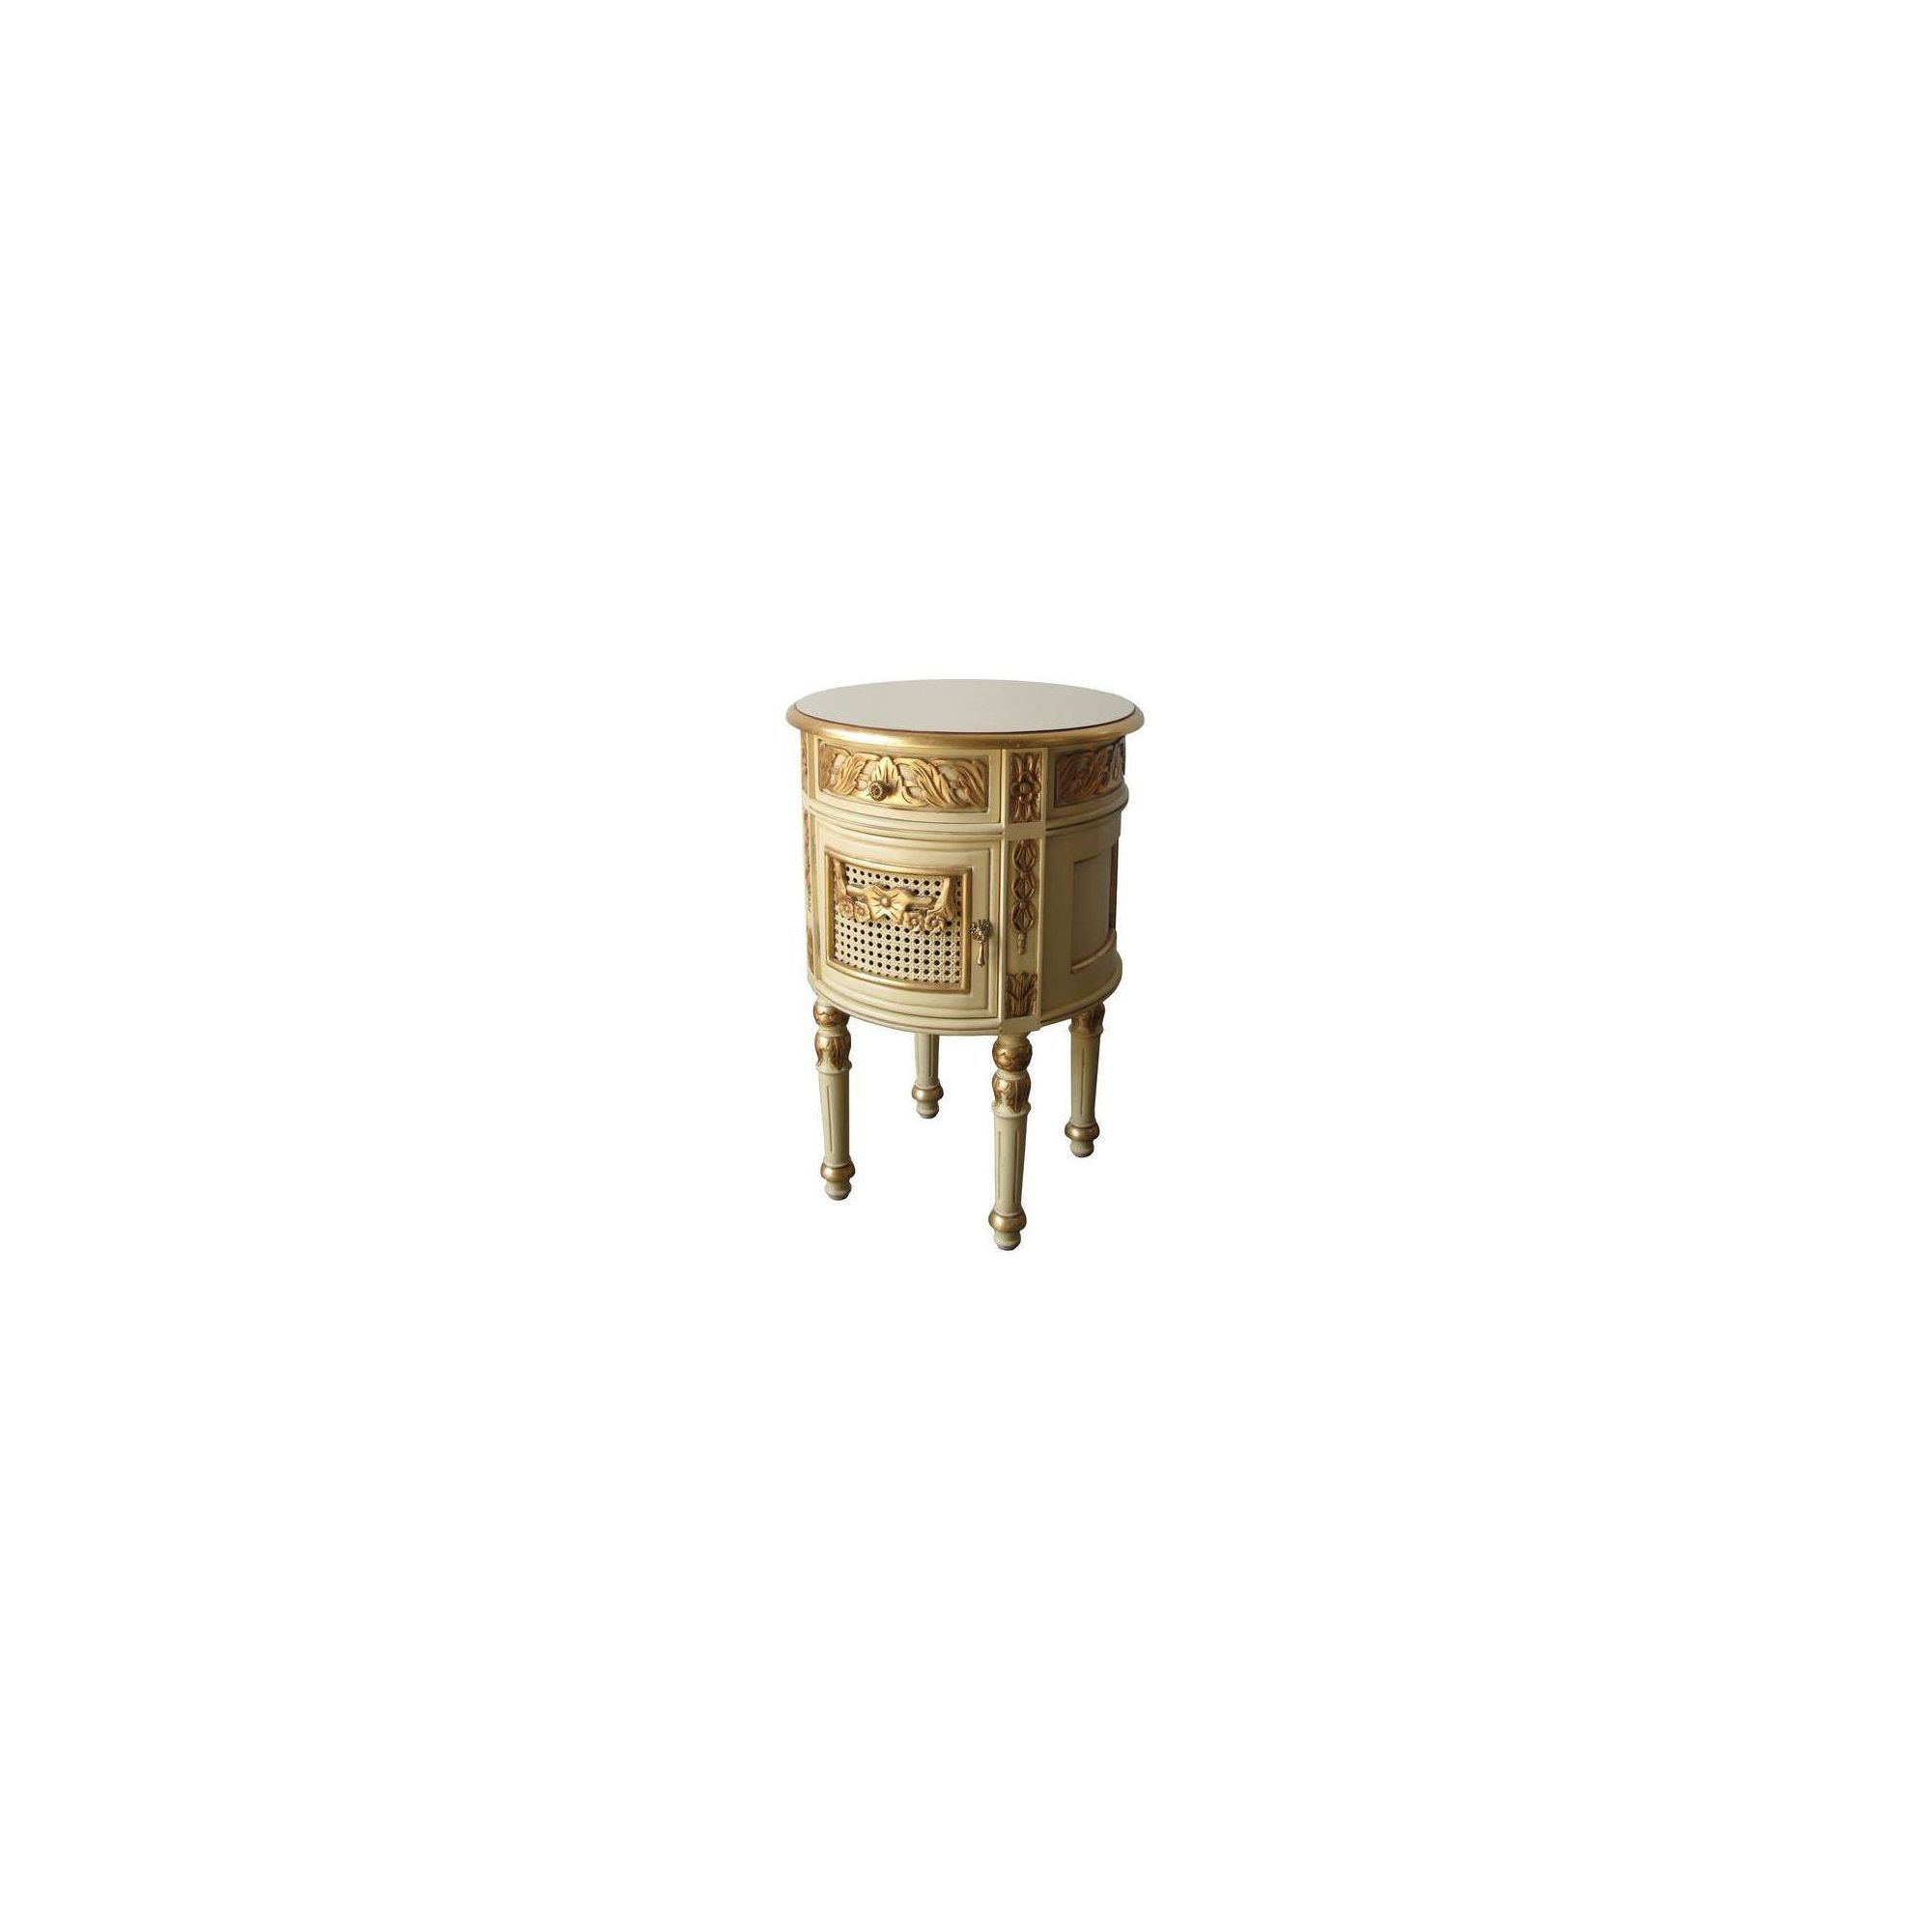 Lock stock and barrel Mahogany French Round Bedside Table in Mahogany - Wax at Tesco Direct